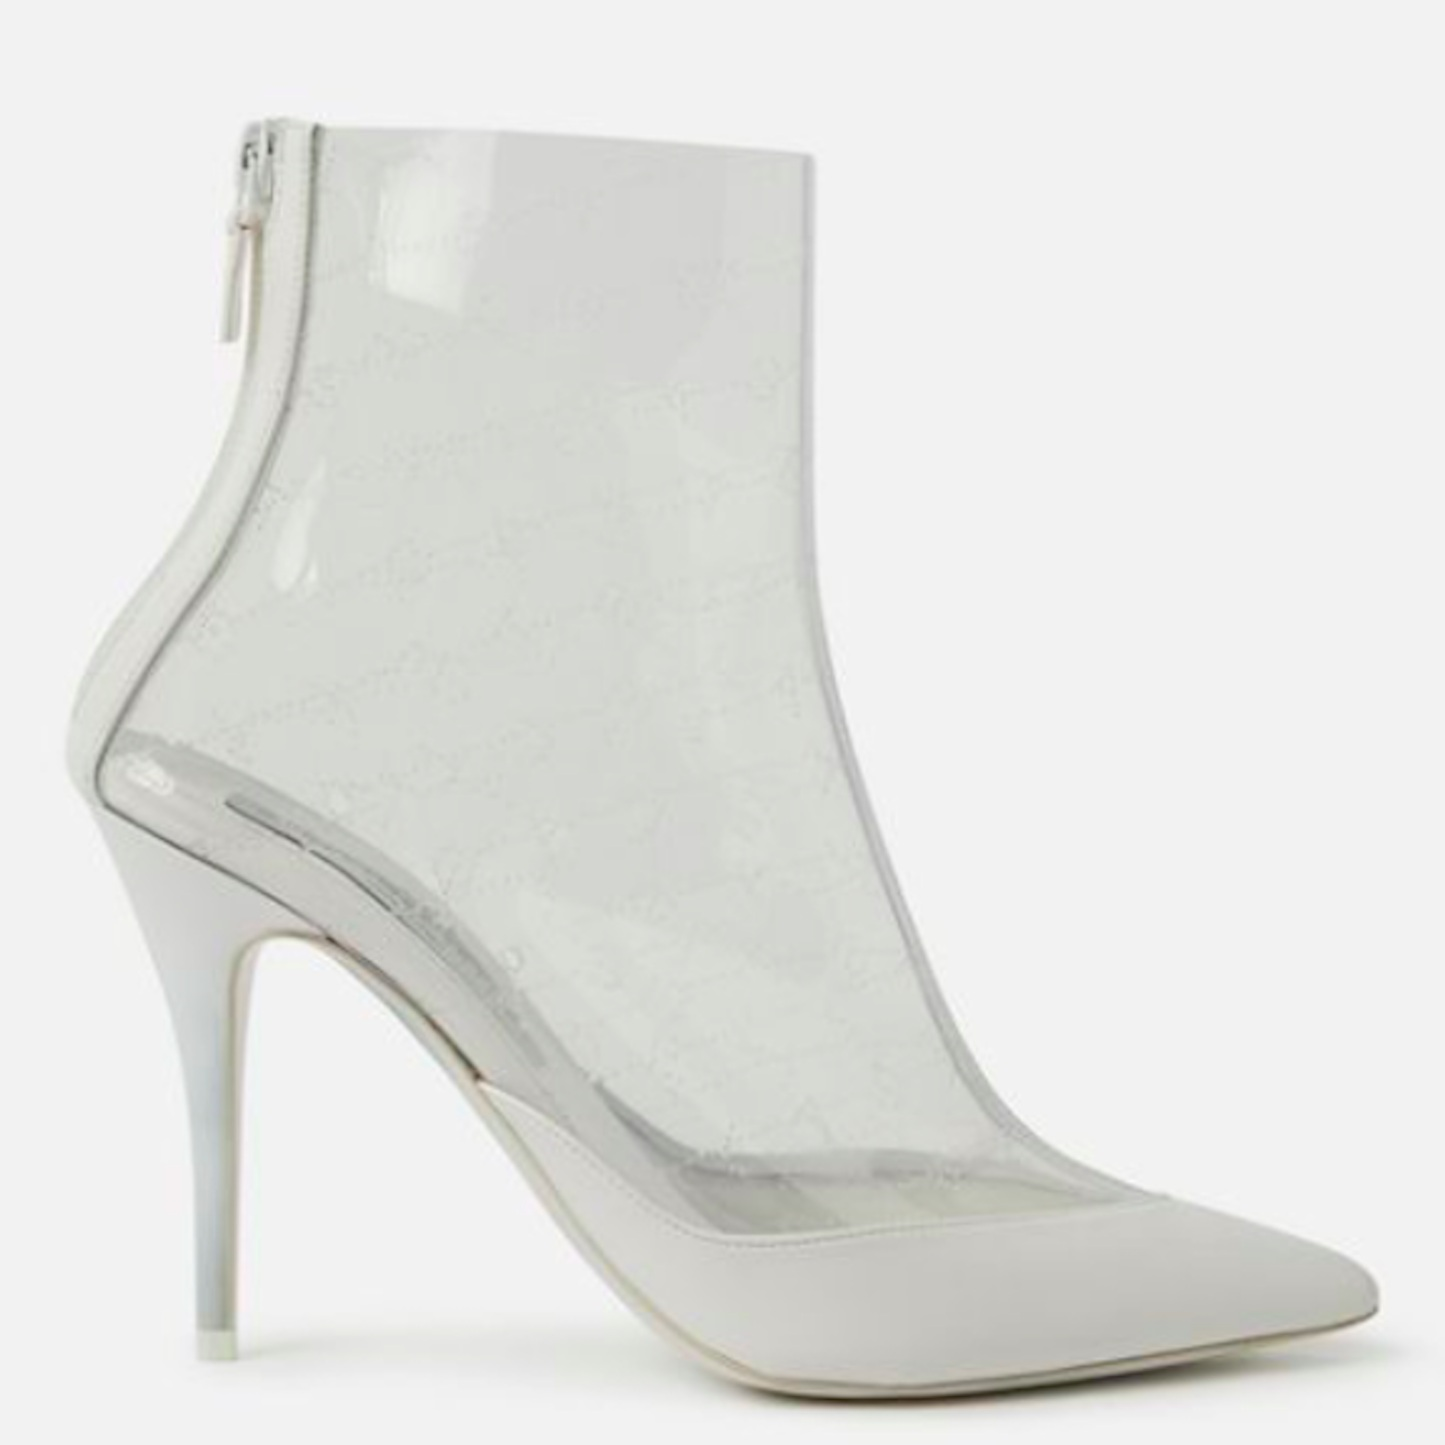 Stella McCartney Transparent Ankle Boots  $915